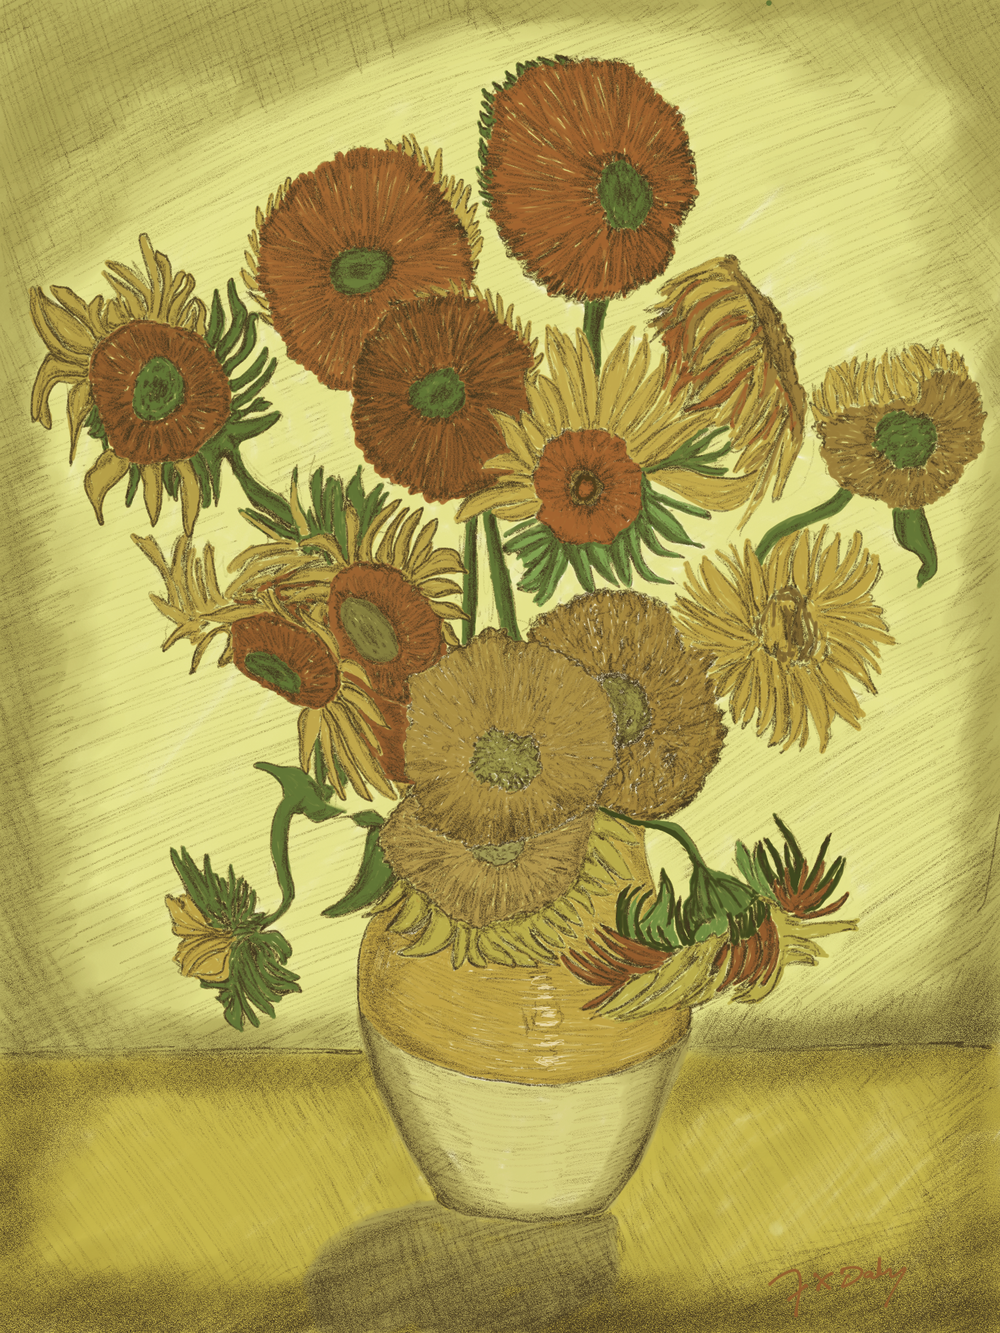 Digital drawing of Van Gogh's Sunflowers by Frank Daly